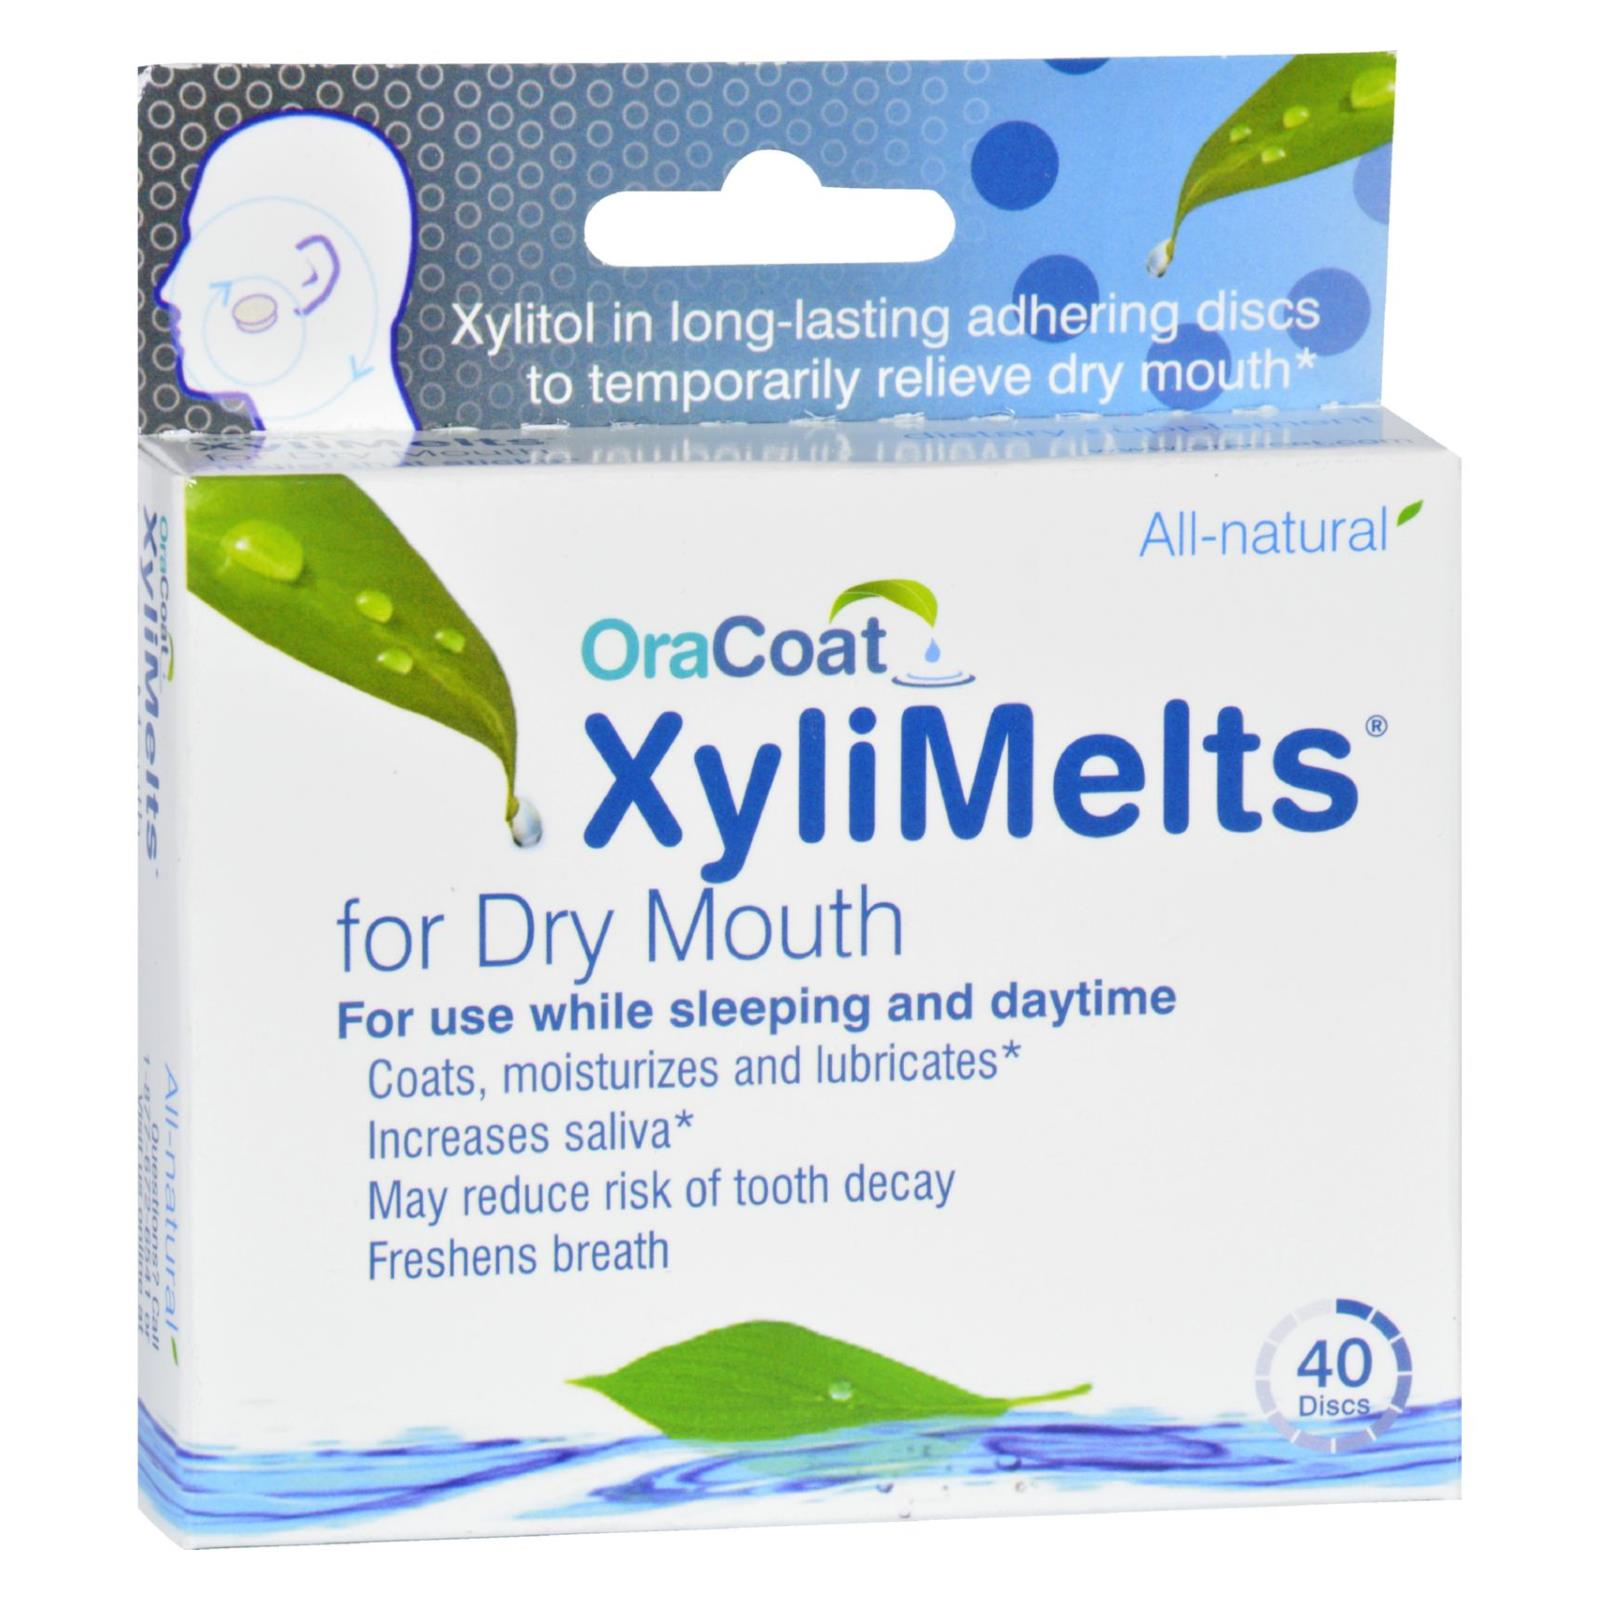 Oracoat - XyliMelts - Dry Mouth - Regular - 40 Count